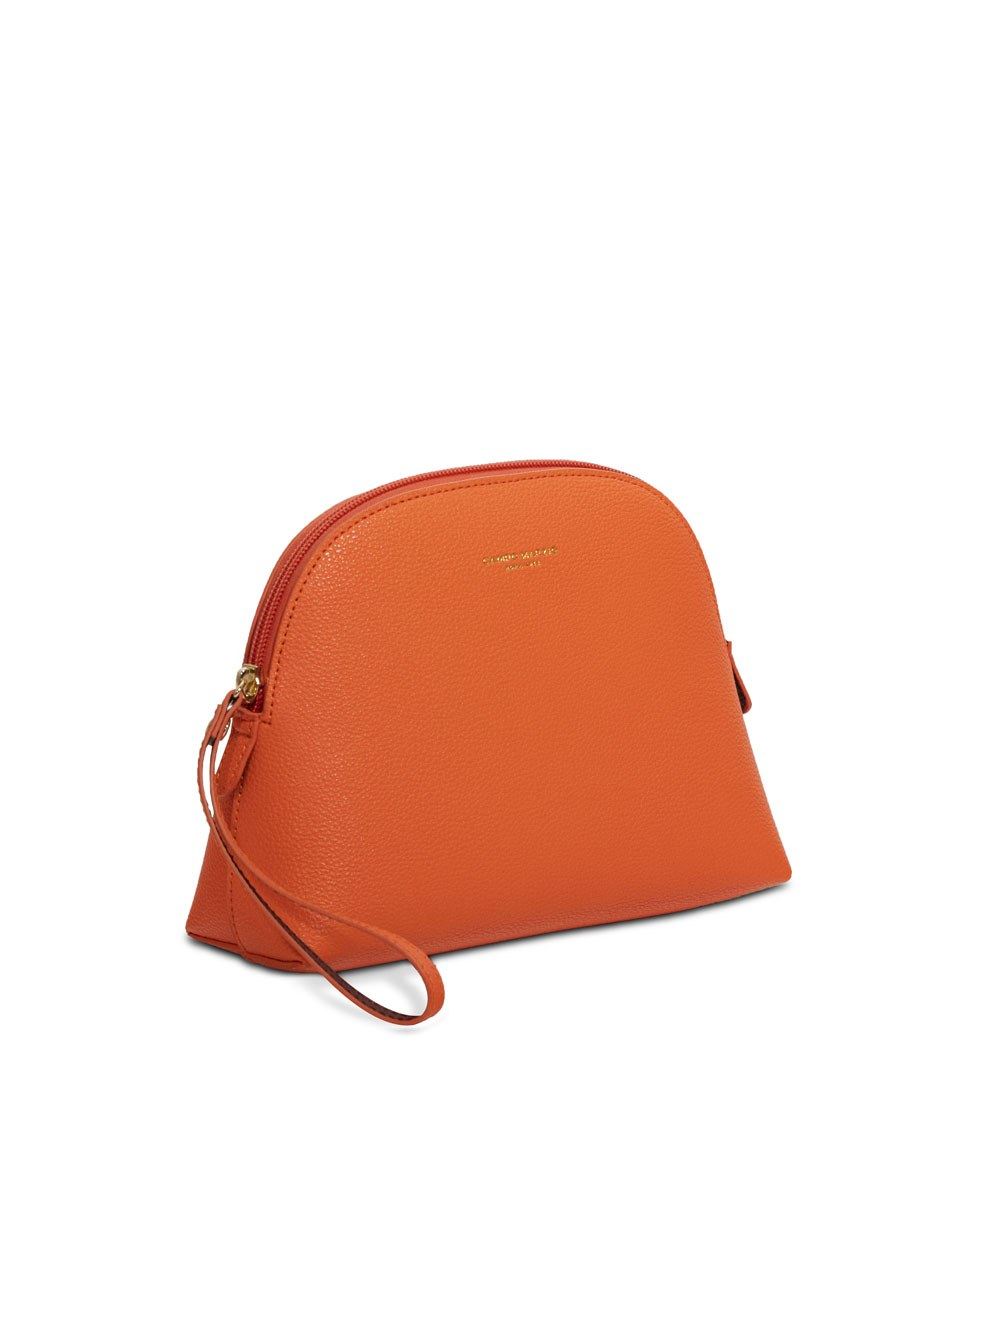 Bag with wrist strap small - Apricot